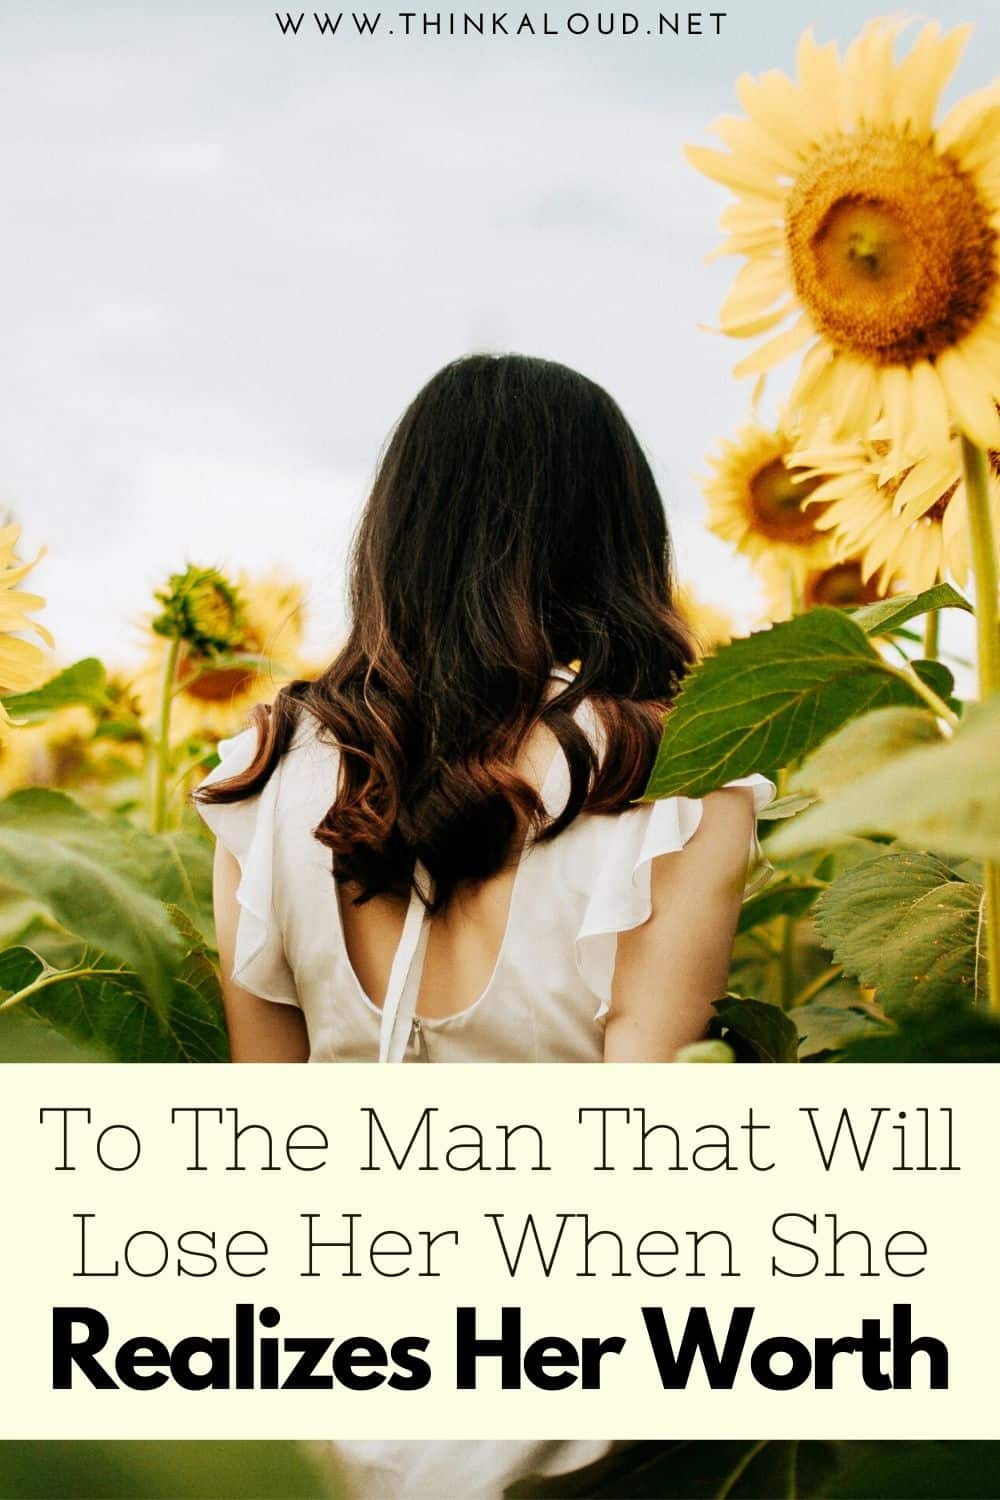 To The Man That Will Lose Her When She Realizes Her Worth